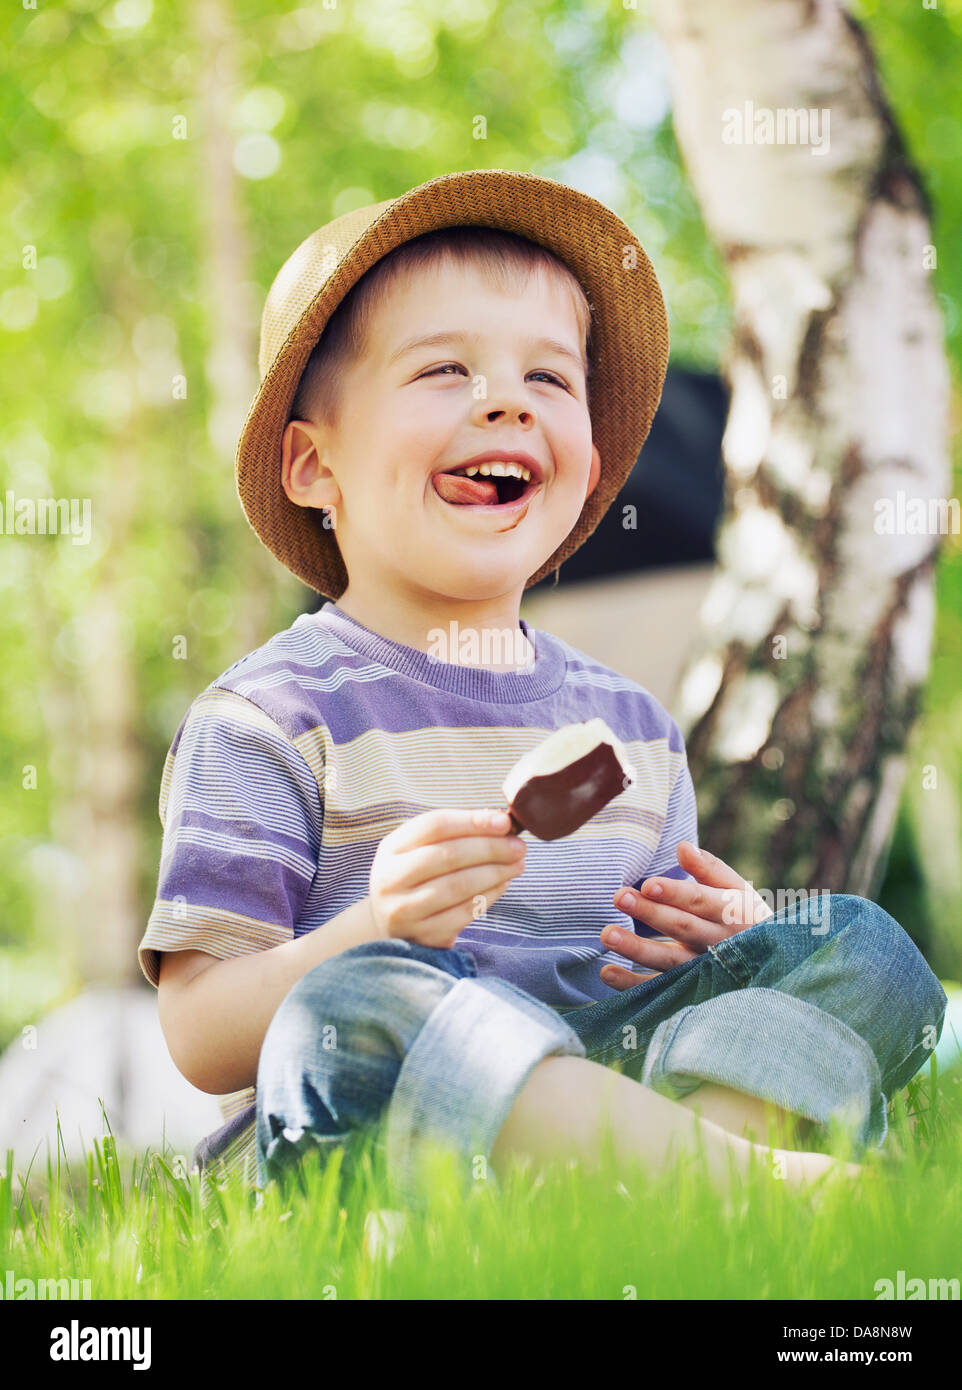 Satisfied little kid consuming an ice cream - Stock Image